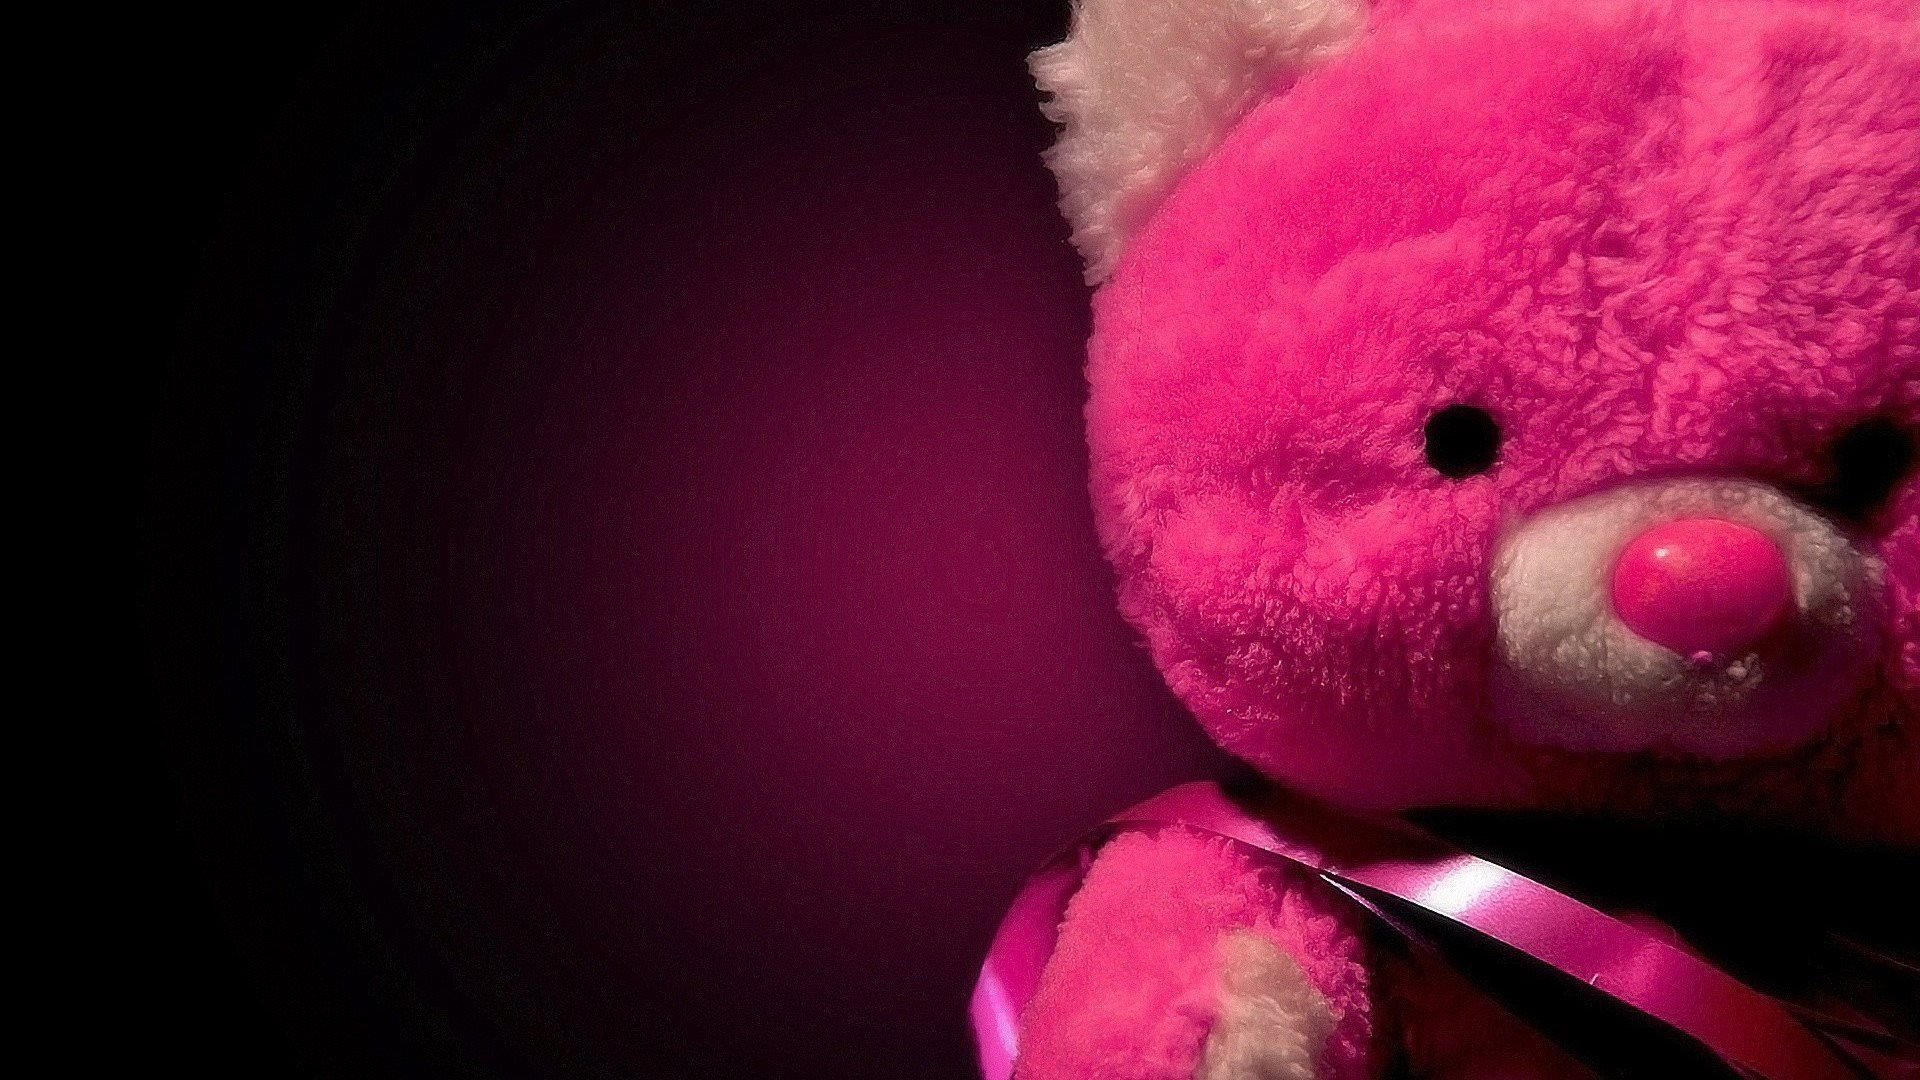 1920x1080 teddy-day red-teddybear-wallpaper ...